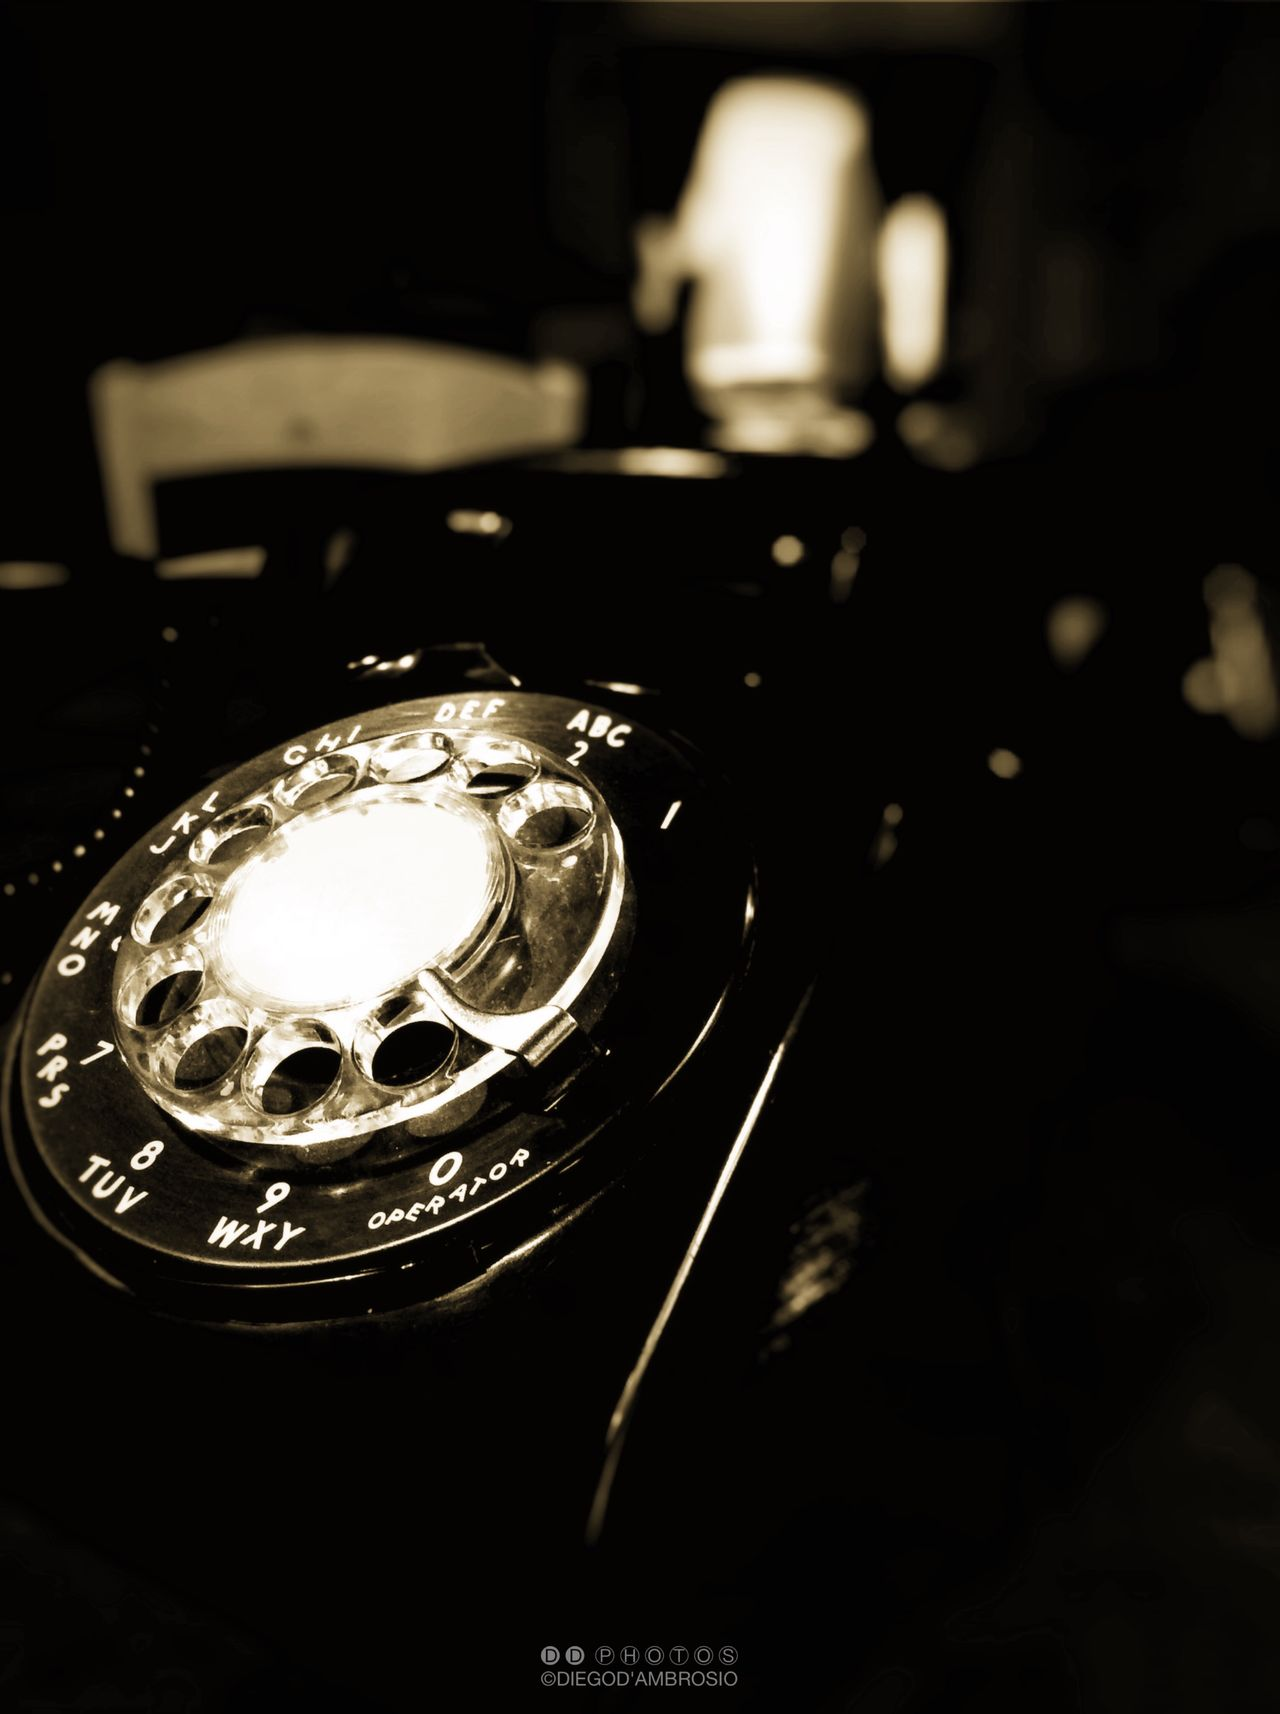 """➲ """"A PHONE CALL FROM THE PAST"""" iPhone 5 - 4.12mm f/2.4 - 3.3mm - 1/25s - ISO 320 - - ©All Rights Reserved to 🅓🅘🅔🅖🅞 🅓'🅐🅜🅑🅡🅞🅢🅘🅞. If shared or used, it shall always mention the author and link the source and in all cases you may not modify in any way the photograph. Antiques Blackandwhite Blackandwhite Photography Chiaroscuro  Closeup Diegodambrosio69 Exploretocreate IndoorPhotography Letters Man_di_ego62 Noir Numbers Oldfashioned Oldphone Oldstyle Oldtelephone Phone Photography Retro Style Revival Shadows StillLife Technology Telephone Vintage Style Visualsoflife"""